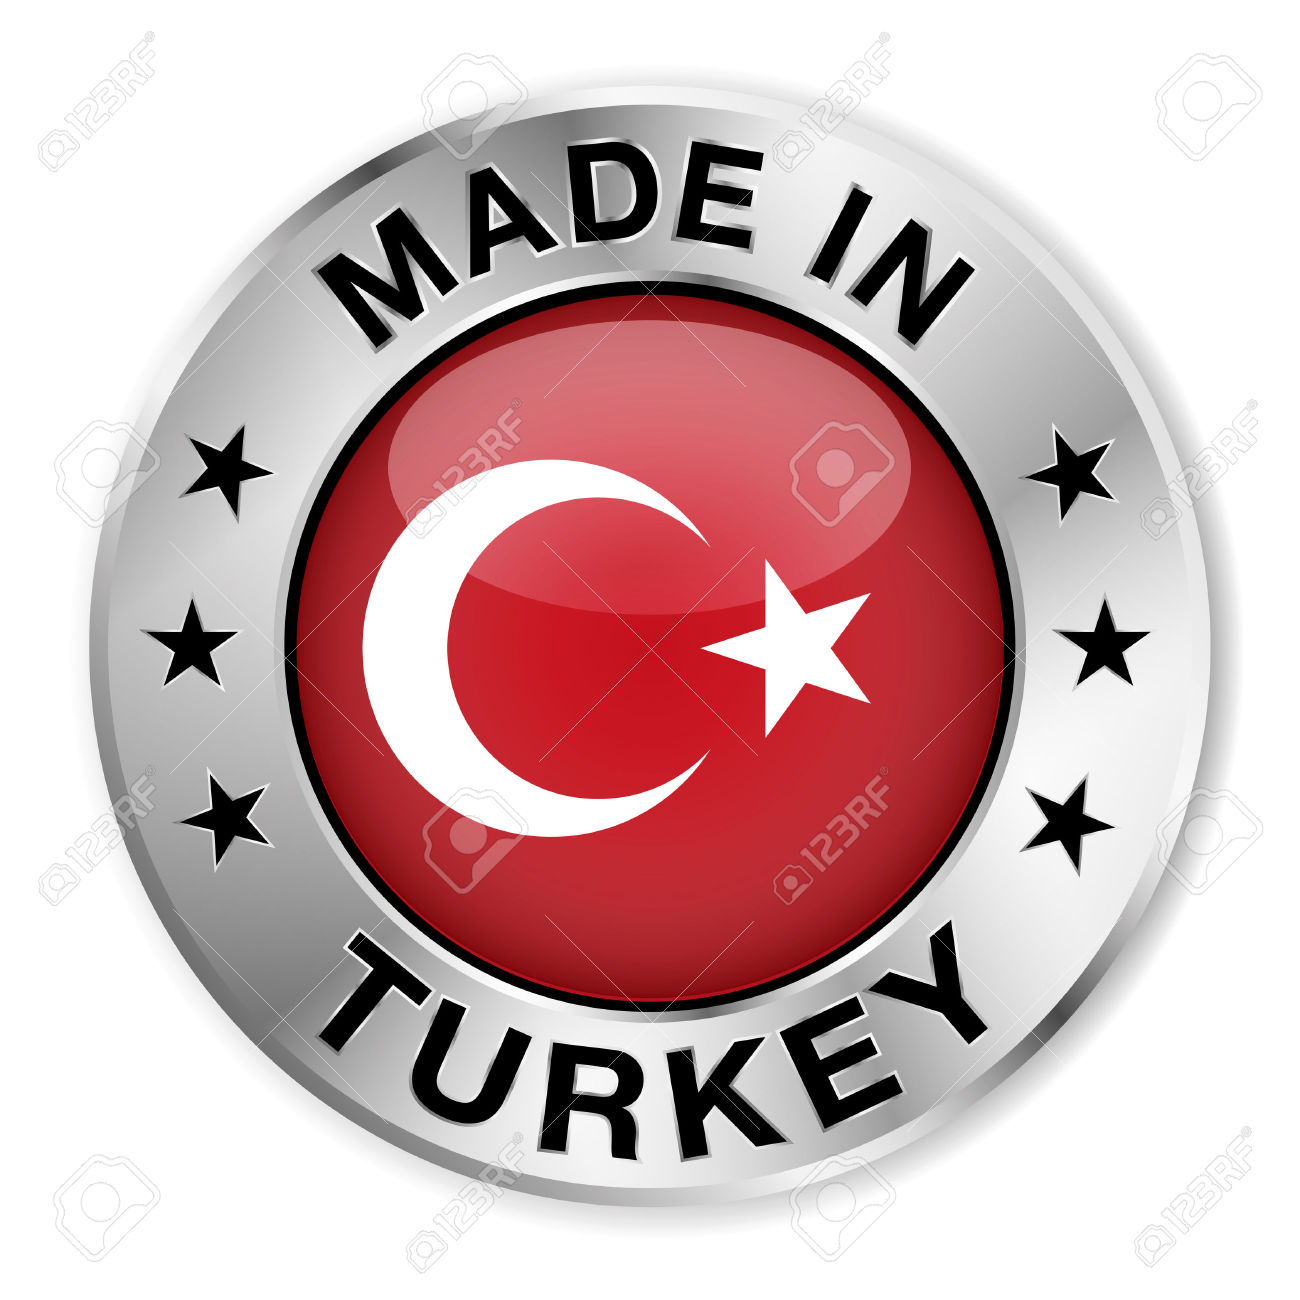 Made In Turkey Silver Badge And Icon With Central Glossy Turkish.